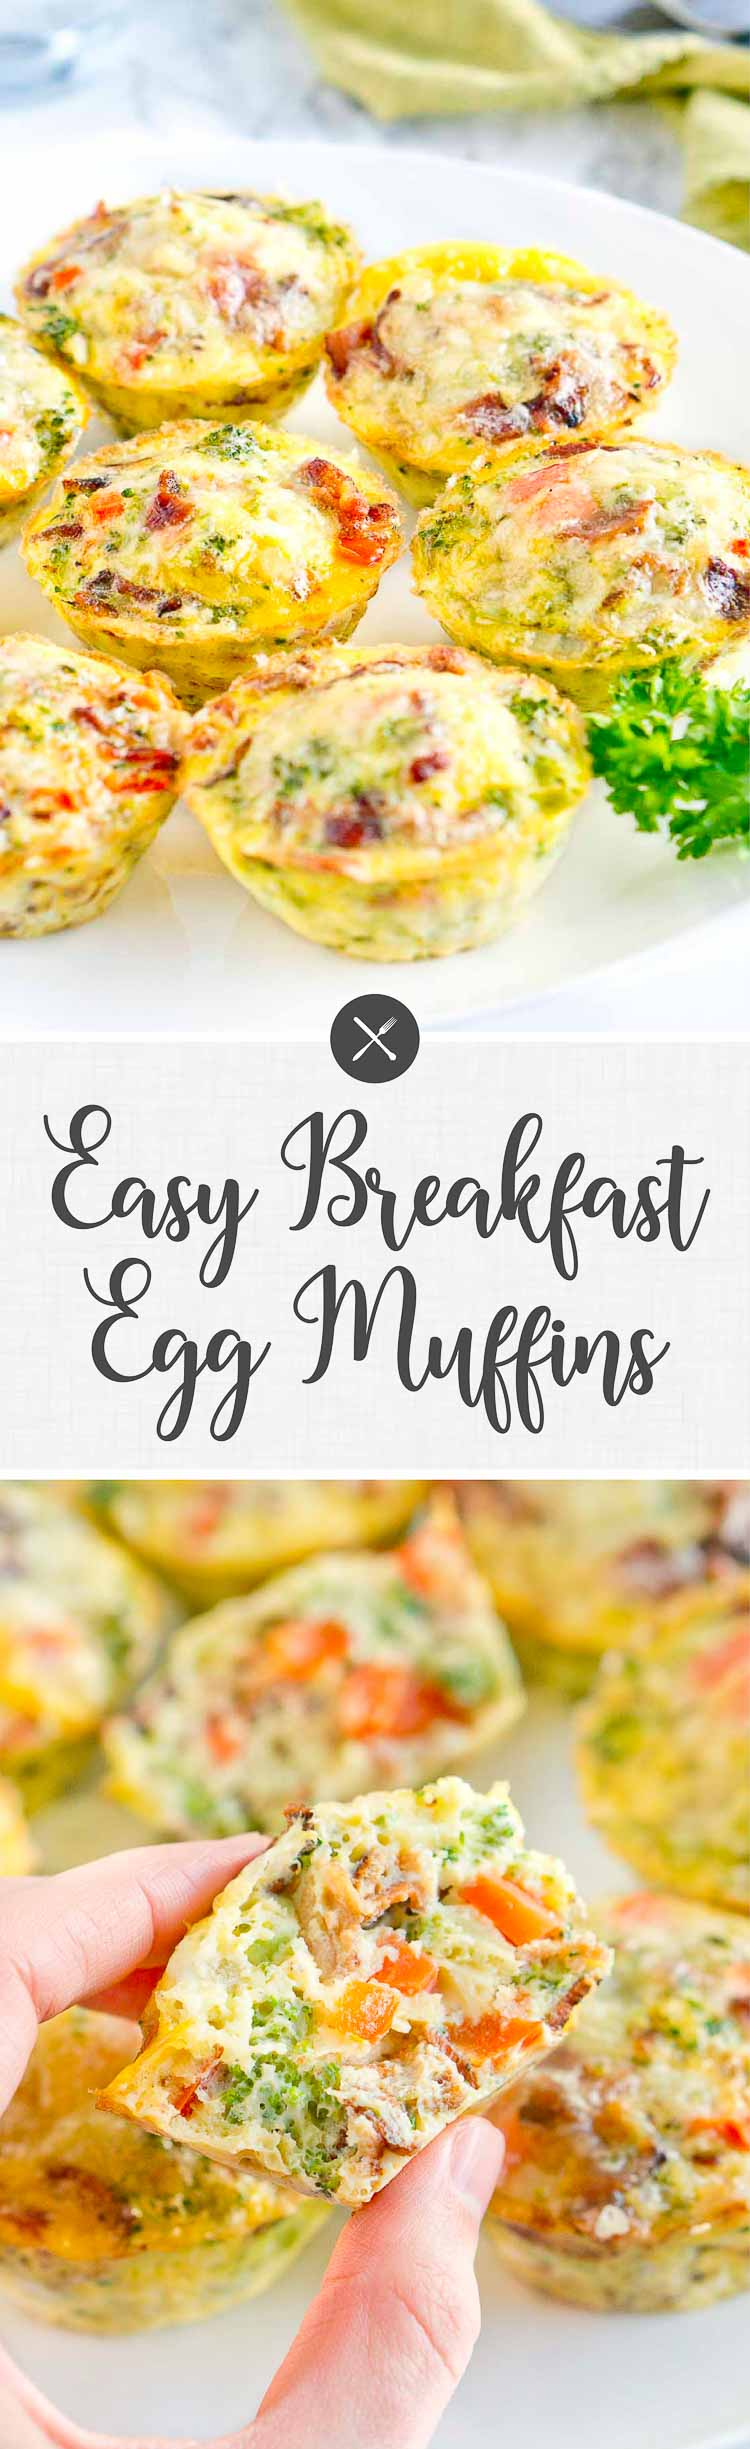 Easy Breakfast Egg Muffins - Perfect grab and go breakfast! So delicious! Bake scrambled eggs & veggies at 375 for 20 min.